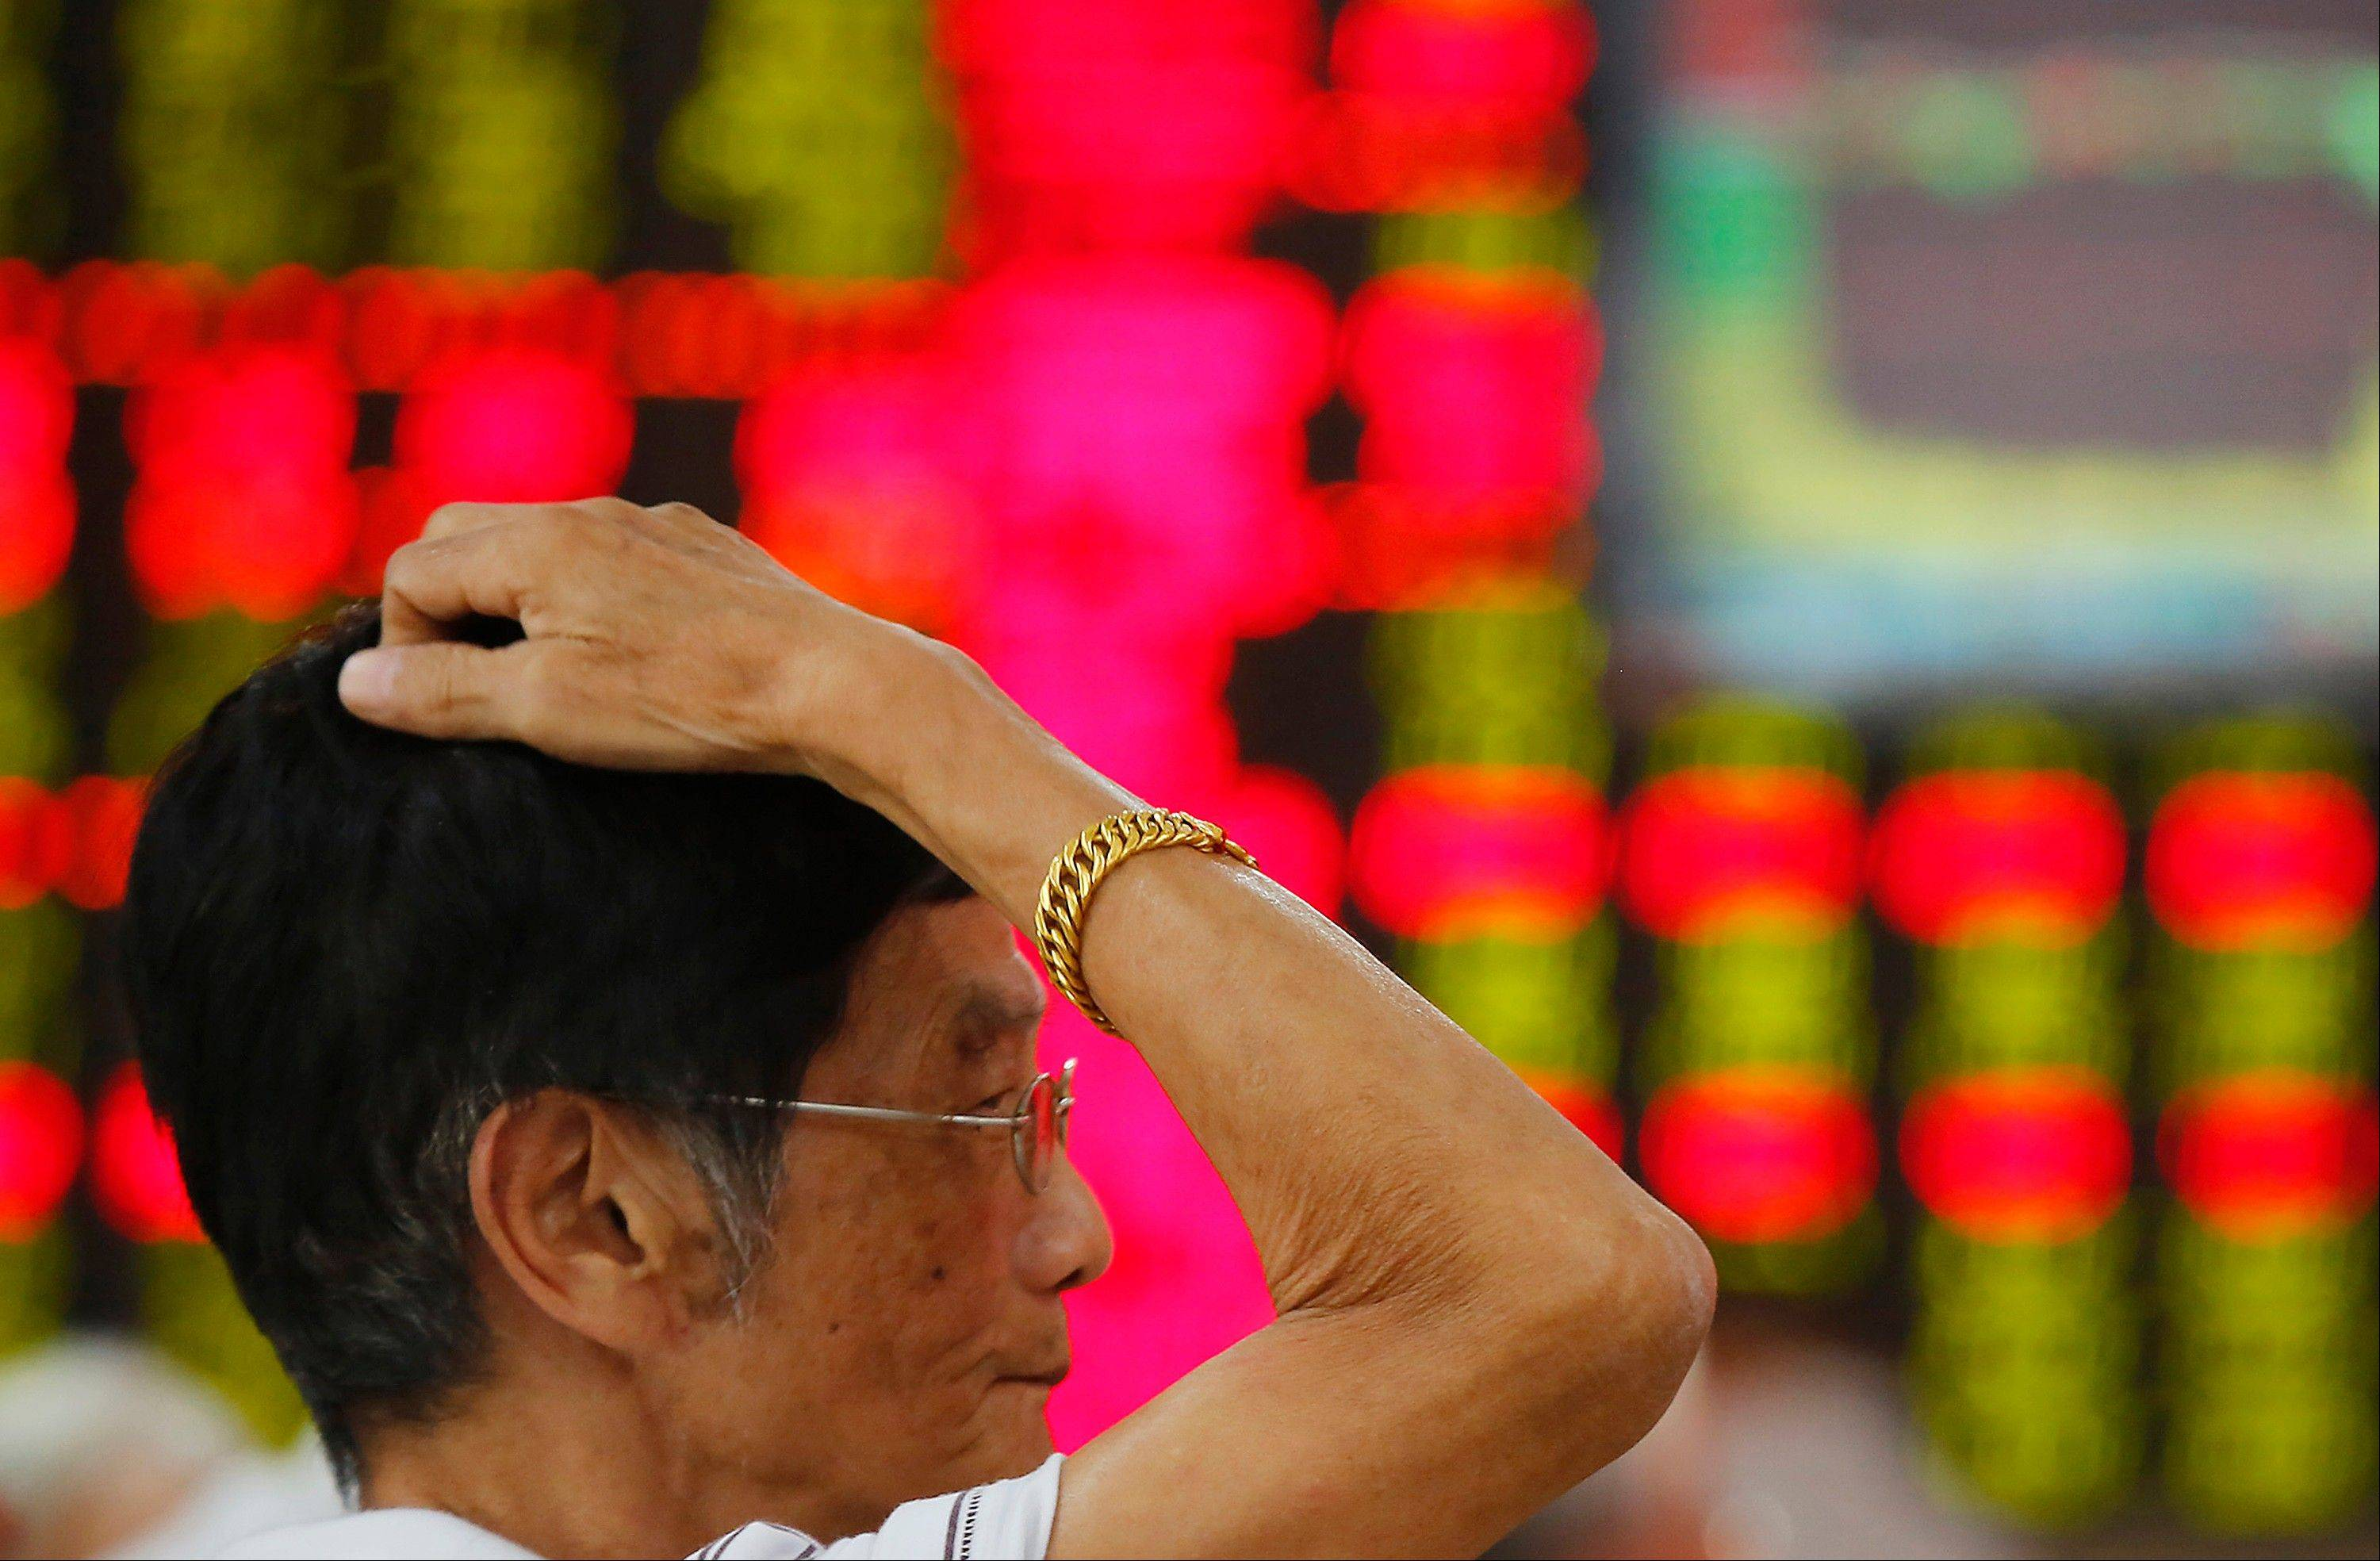 An investor looks at the stock price monitor Friday at a private securities company in Shanghai, China. Asian stock markets rose Friday after encouraging economic data from China and Europe raised hopes that a global economic recovery was under way.